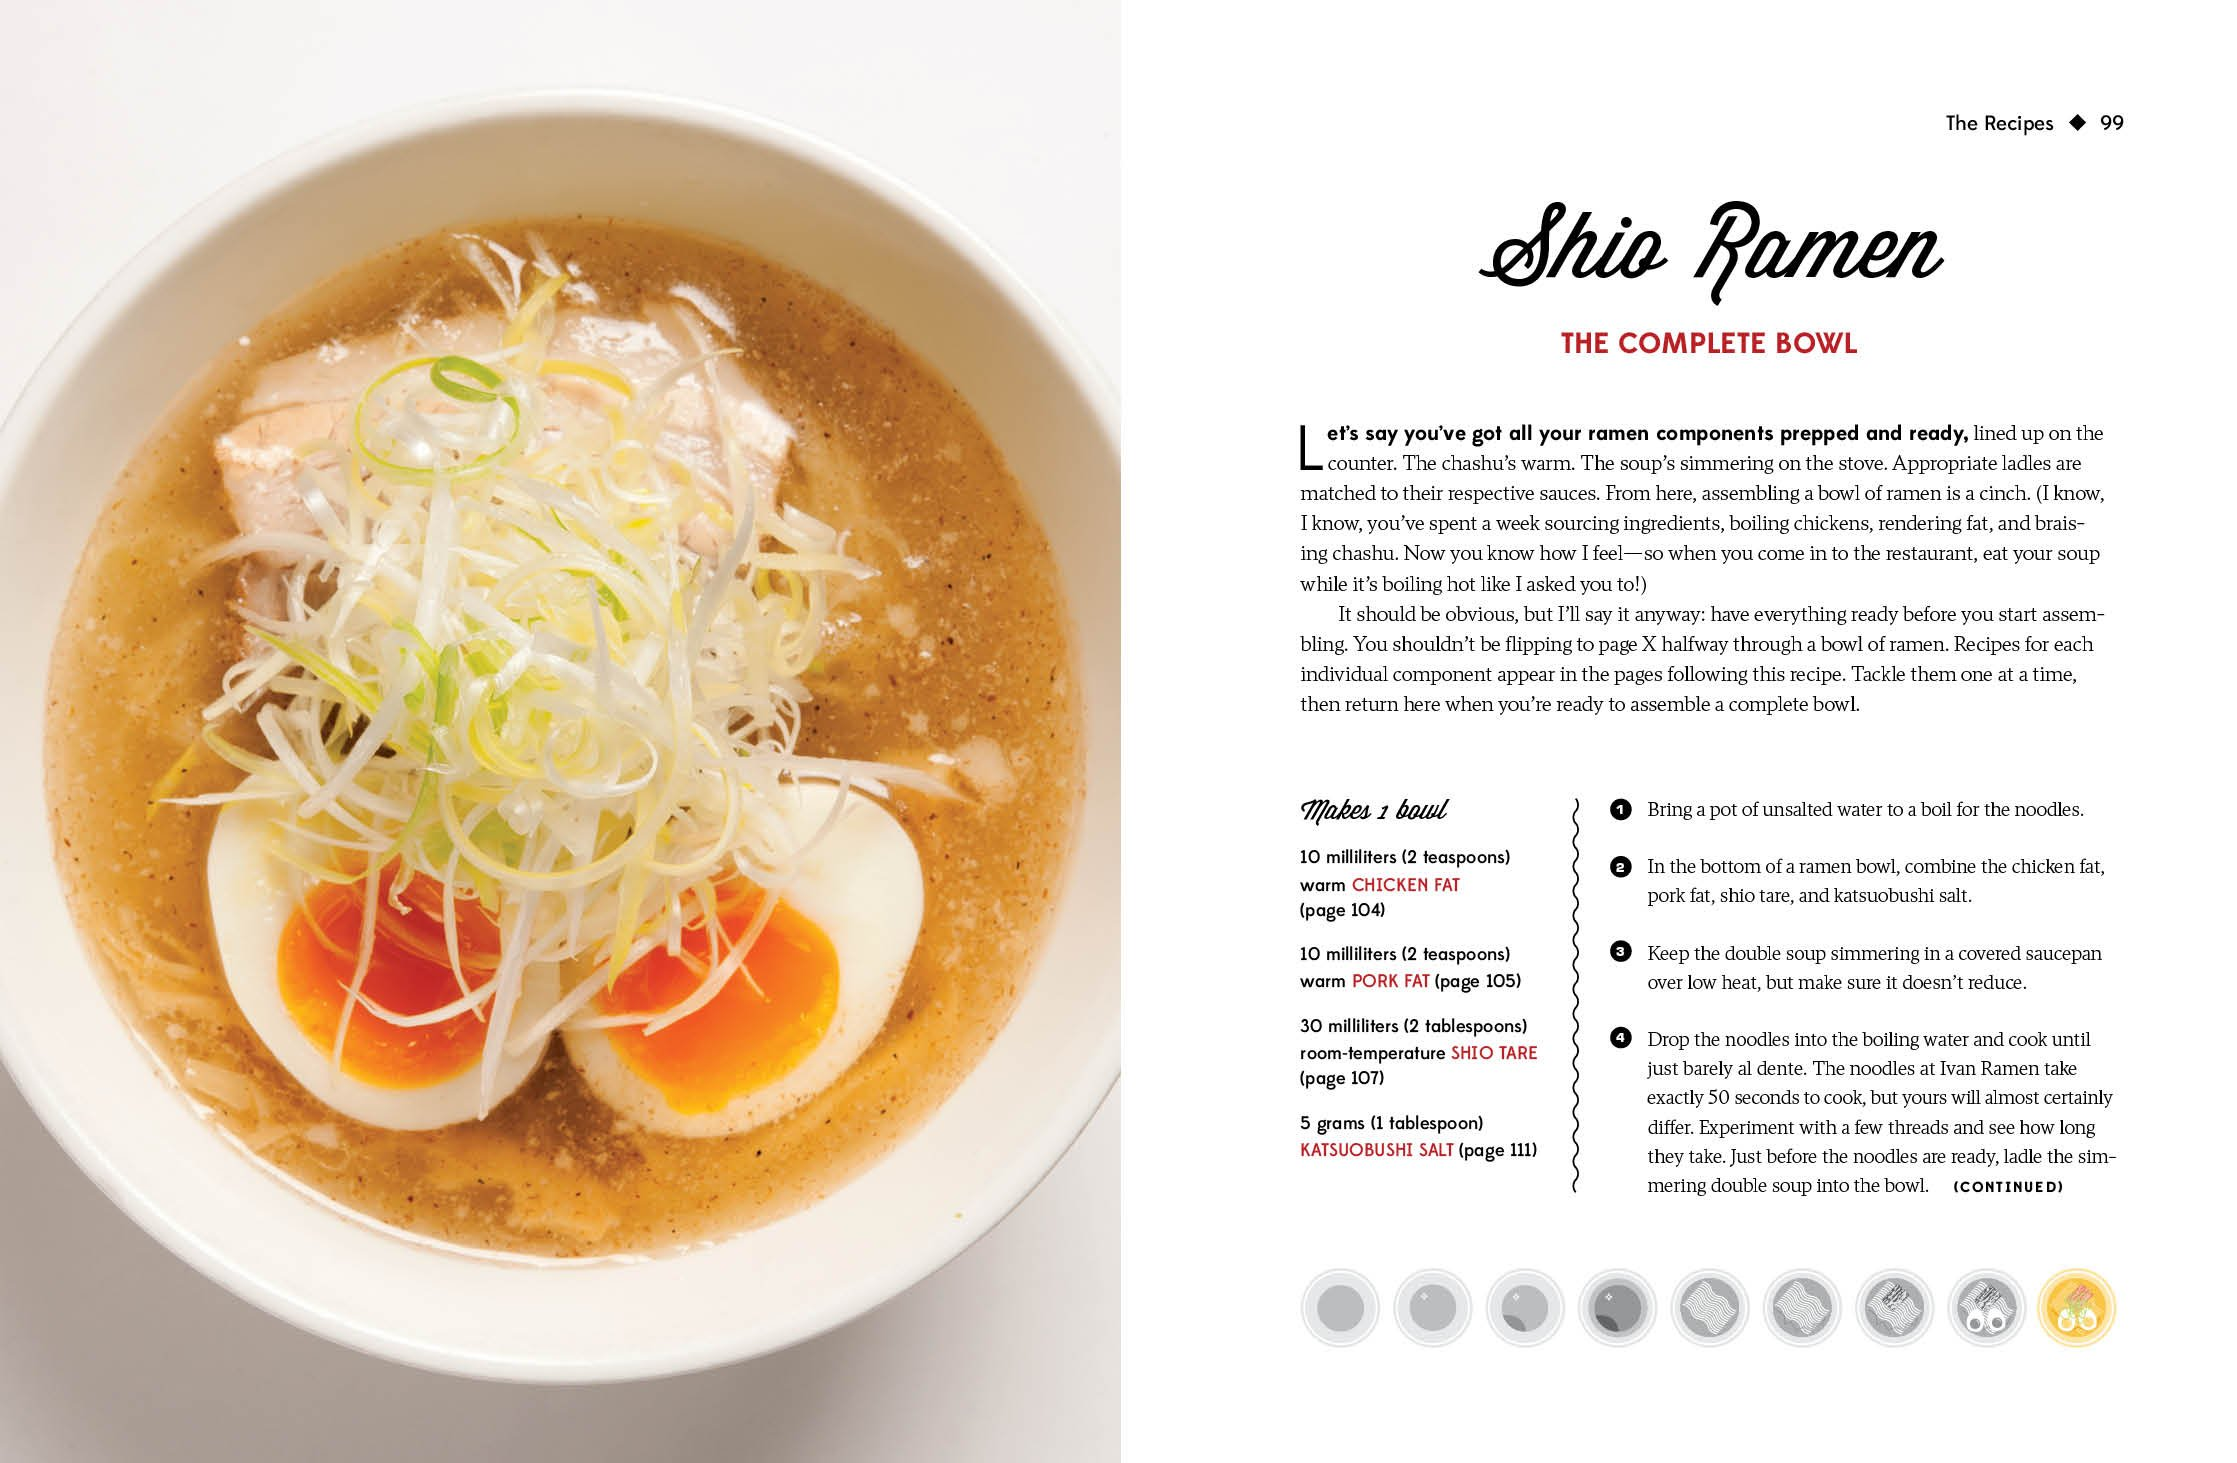 Ivan ramen love obsession and recipes from tokyos most unlikely ivan ramen love obsession and recipes from tokyos most unlikely noodle joint ivan orkin chris ying david chang 9781607744467 amazon books forumfinder Images